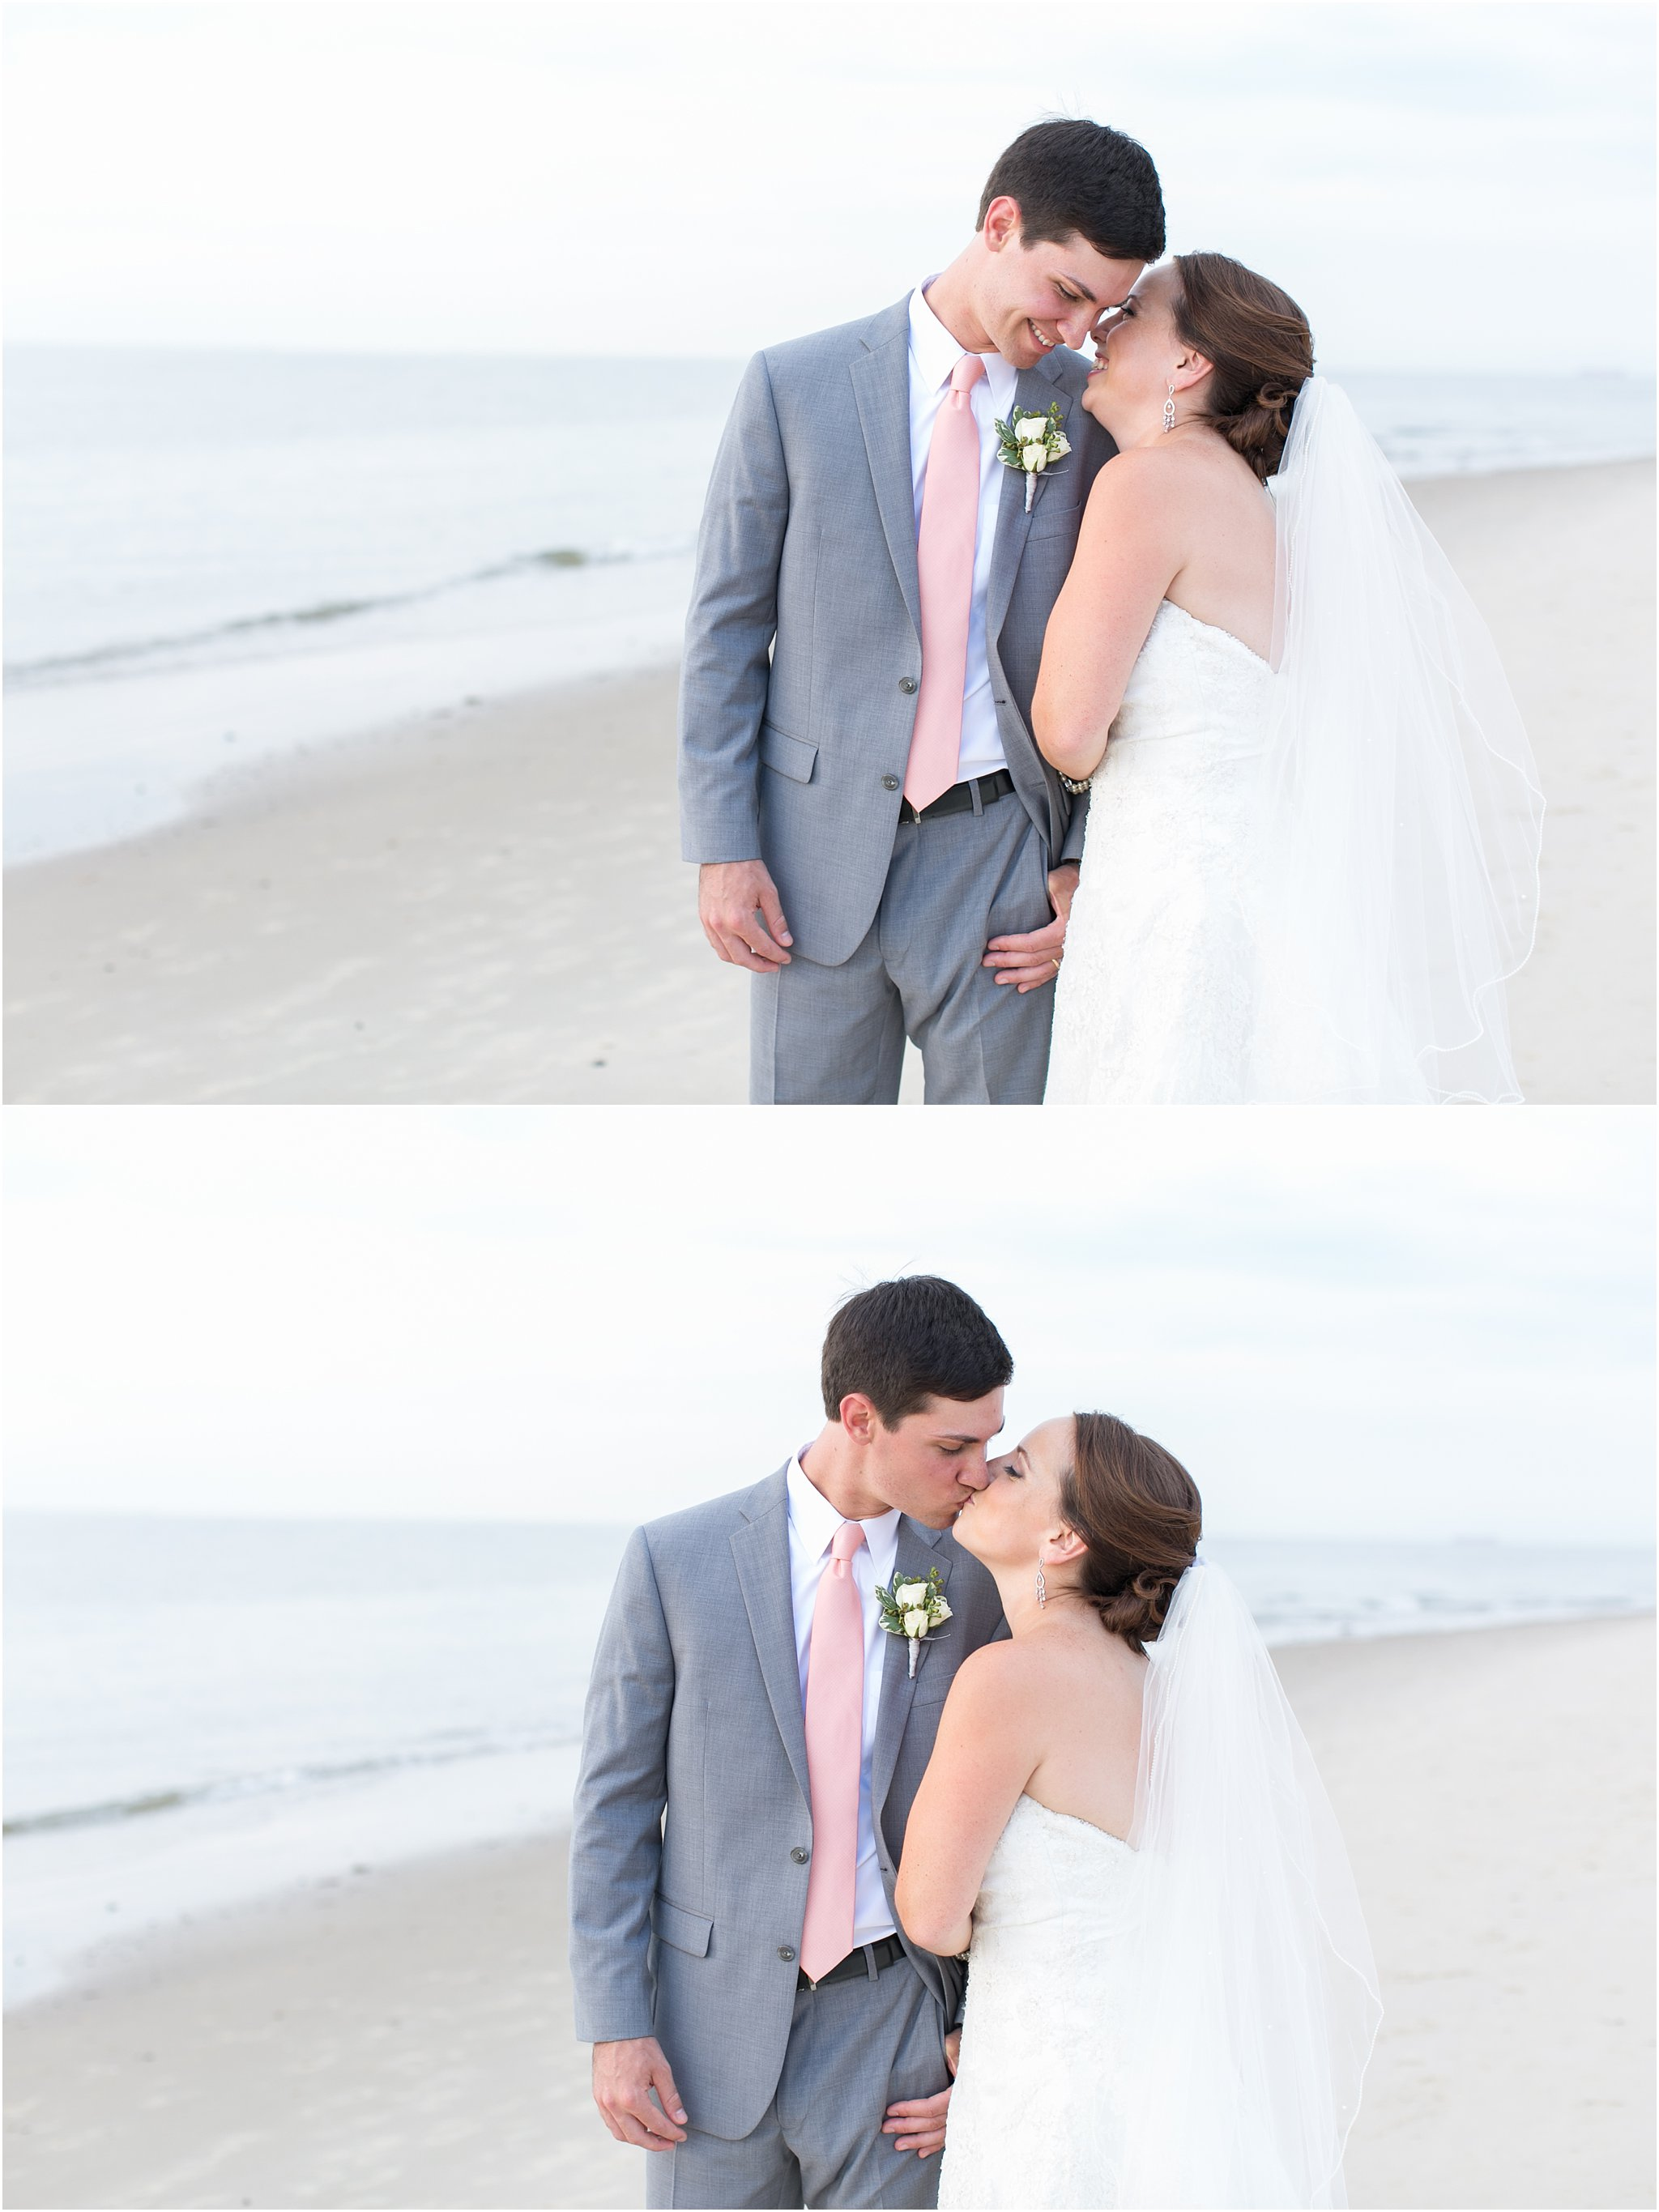 jessica_ryan_photography_wedding_photography_virginiabeach_virginia_candid_authentic_wedding_portraits_marina_shores_yacht_club_chesapeake_bay_1889